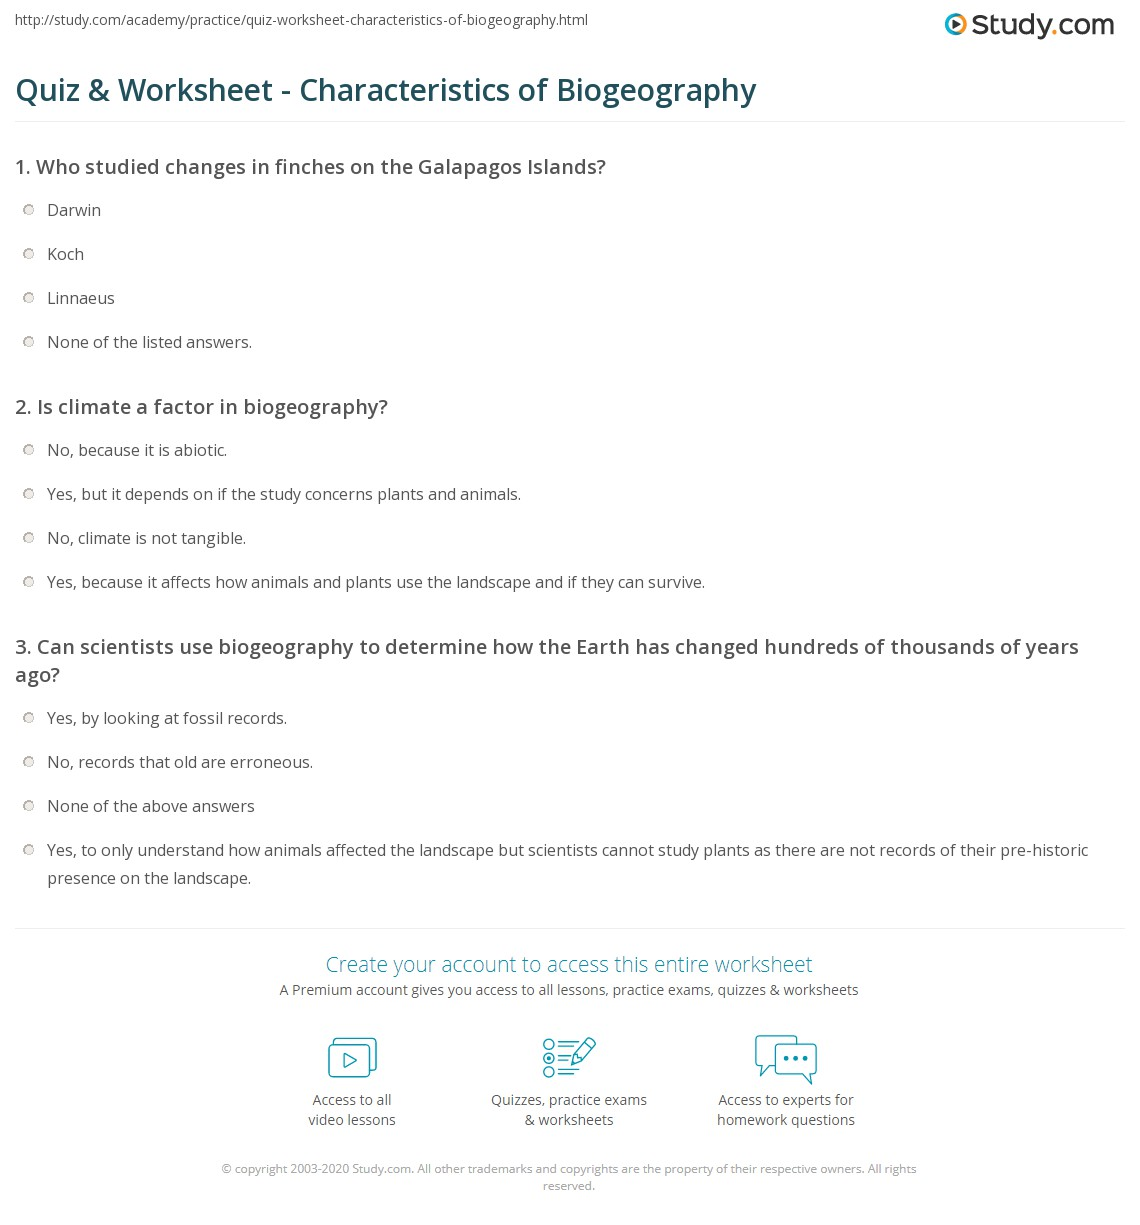 quiz worksheet characteristics of biogeography. Black Bedroom Furniture Sets. Home Design Ideas